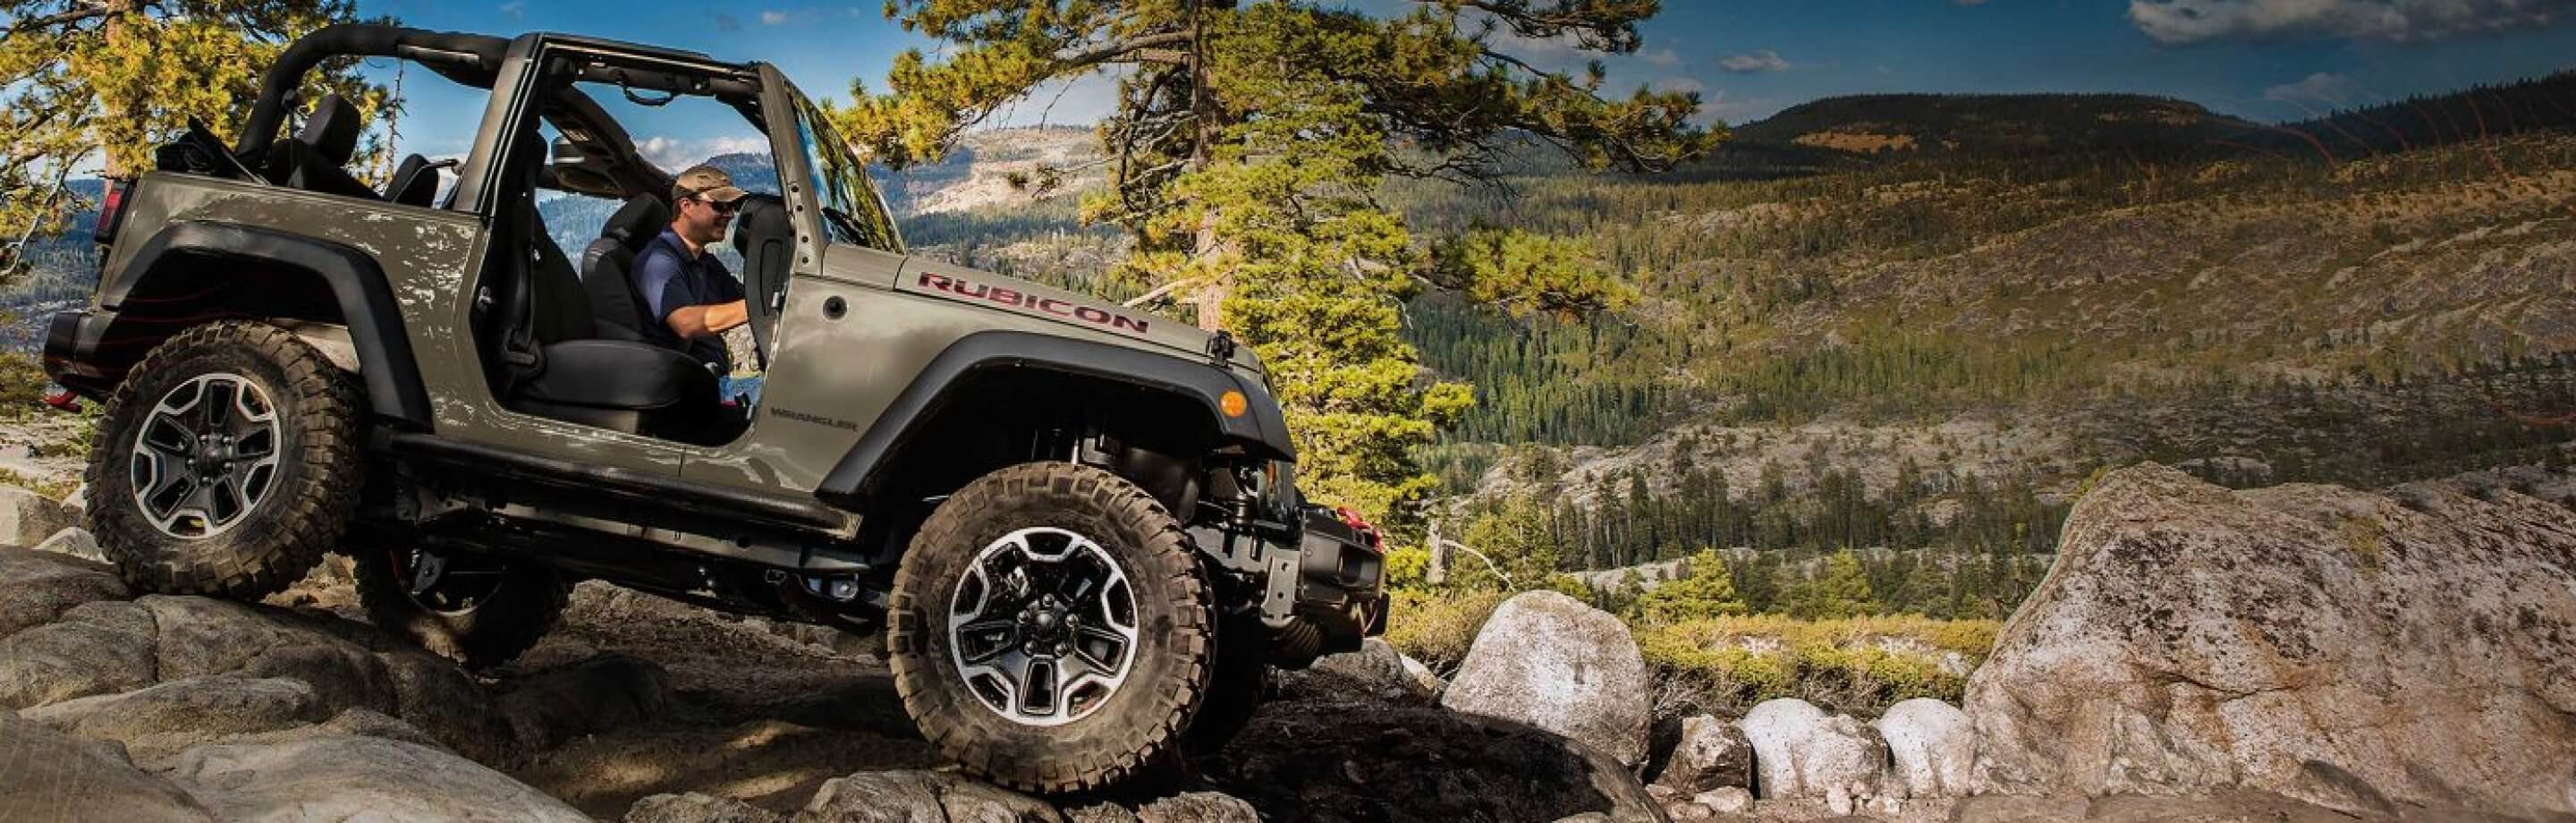 Jeep Off Roading 101 - Safety Checklist